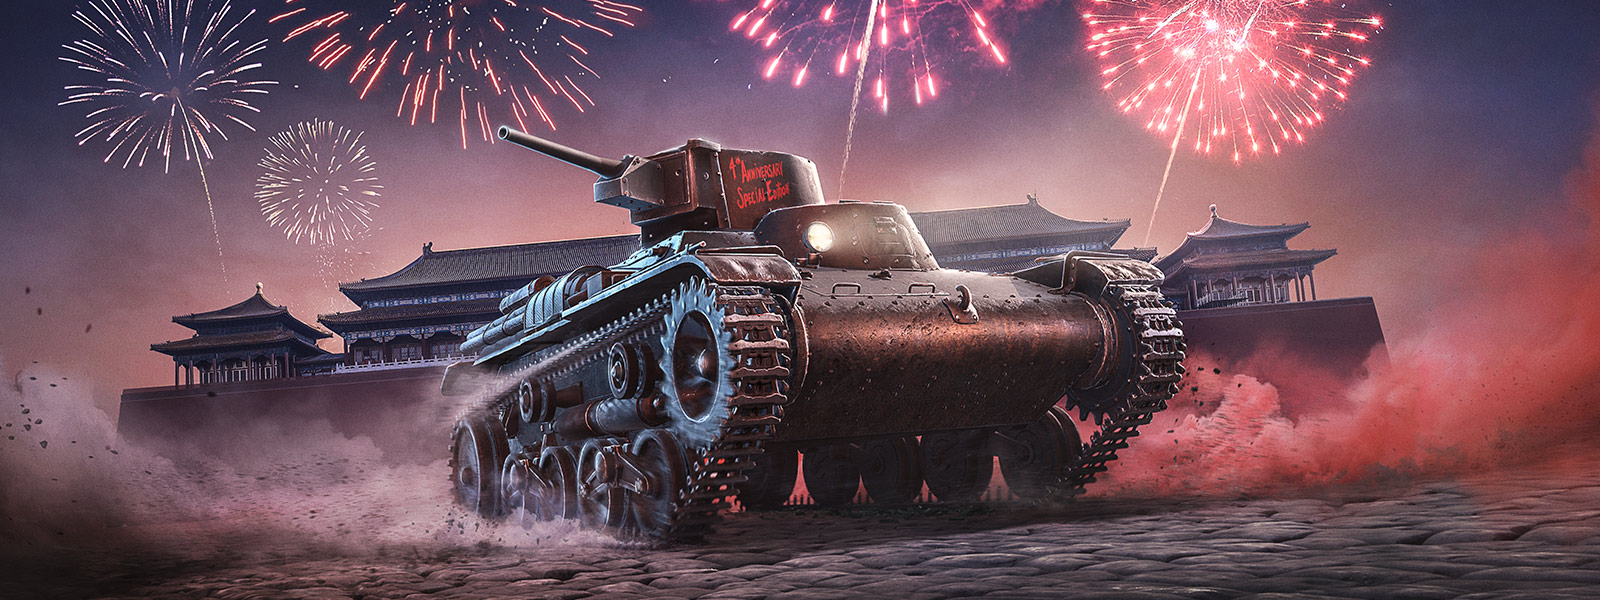 Tank in front of Japanese buildings with fireworks above